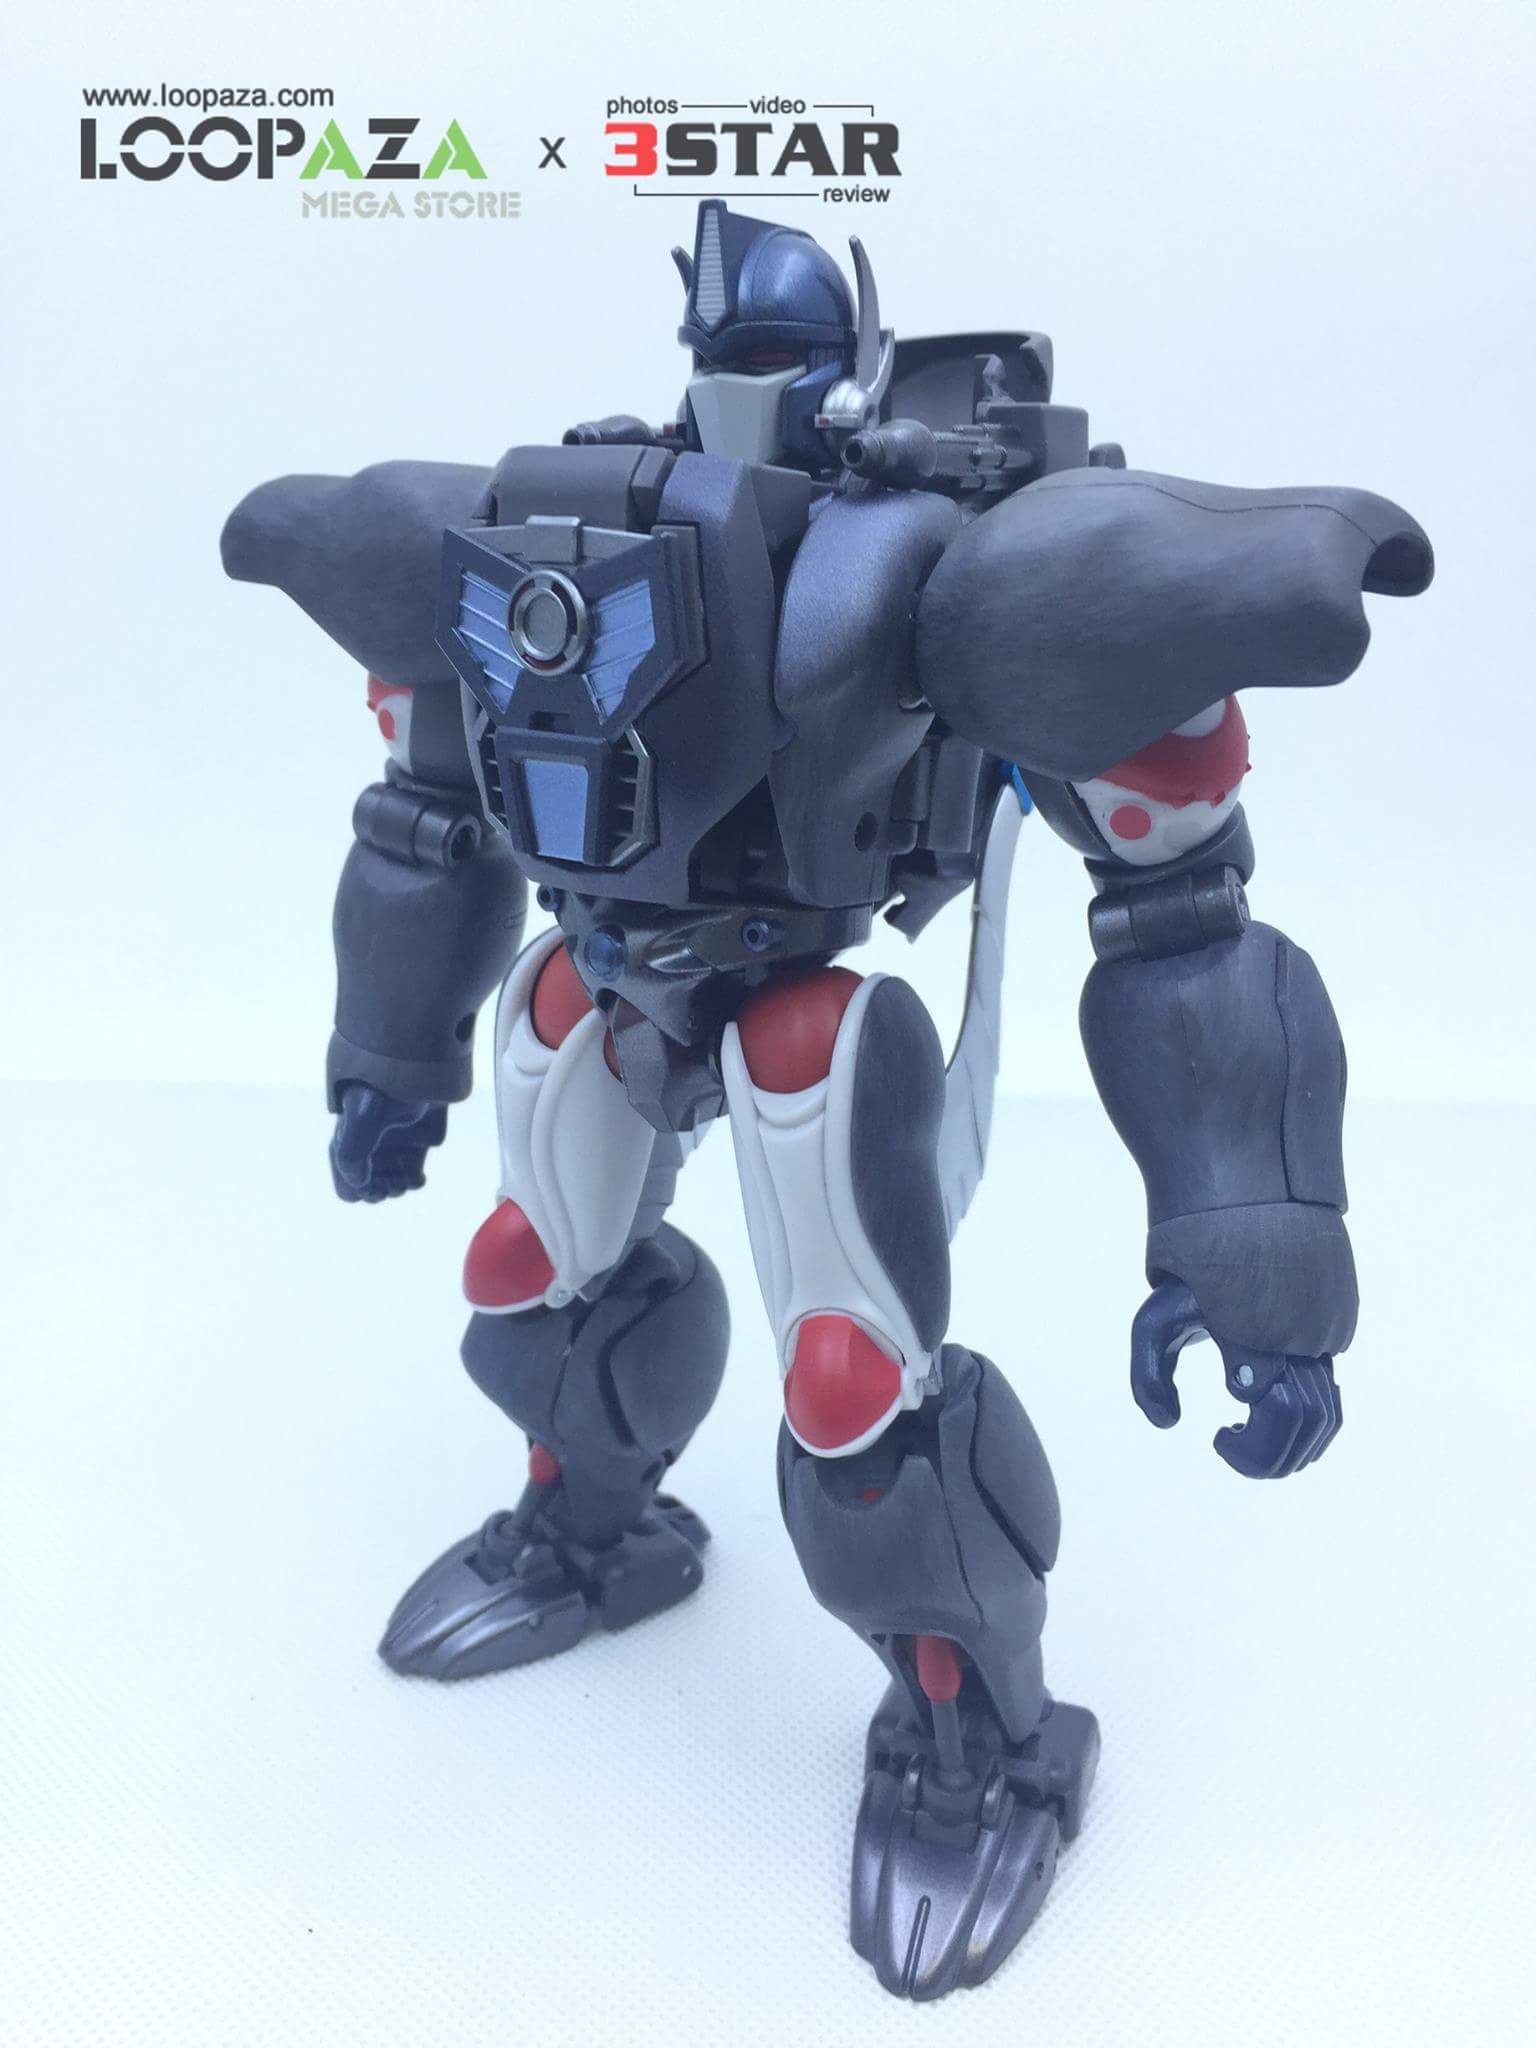 [Masterpiece] MP-32, MP-38 Optimus Primal et MP-38+ Burning Convoy (Beast Wars) - Page 3 Y4aFqVr2